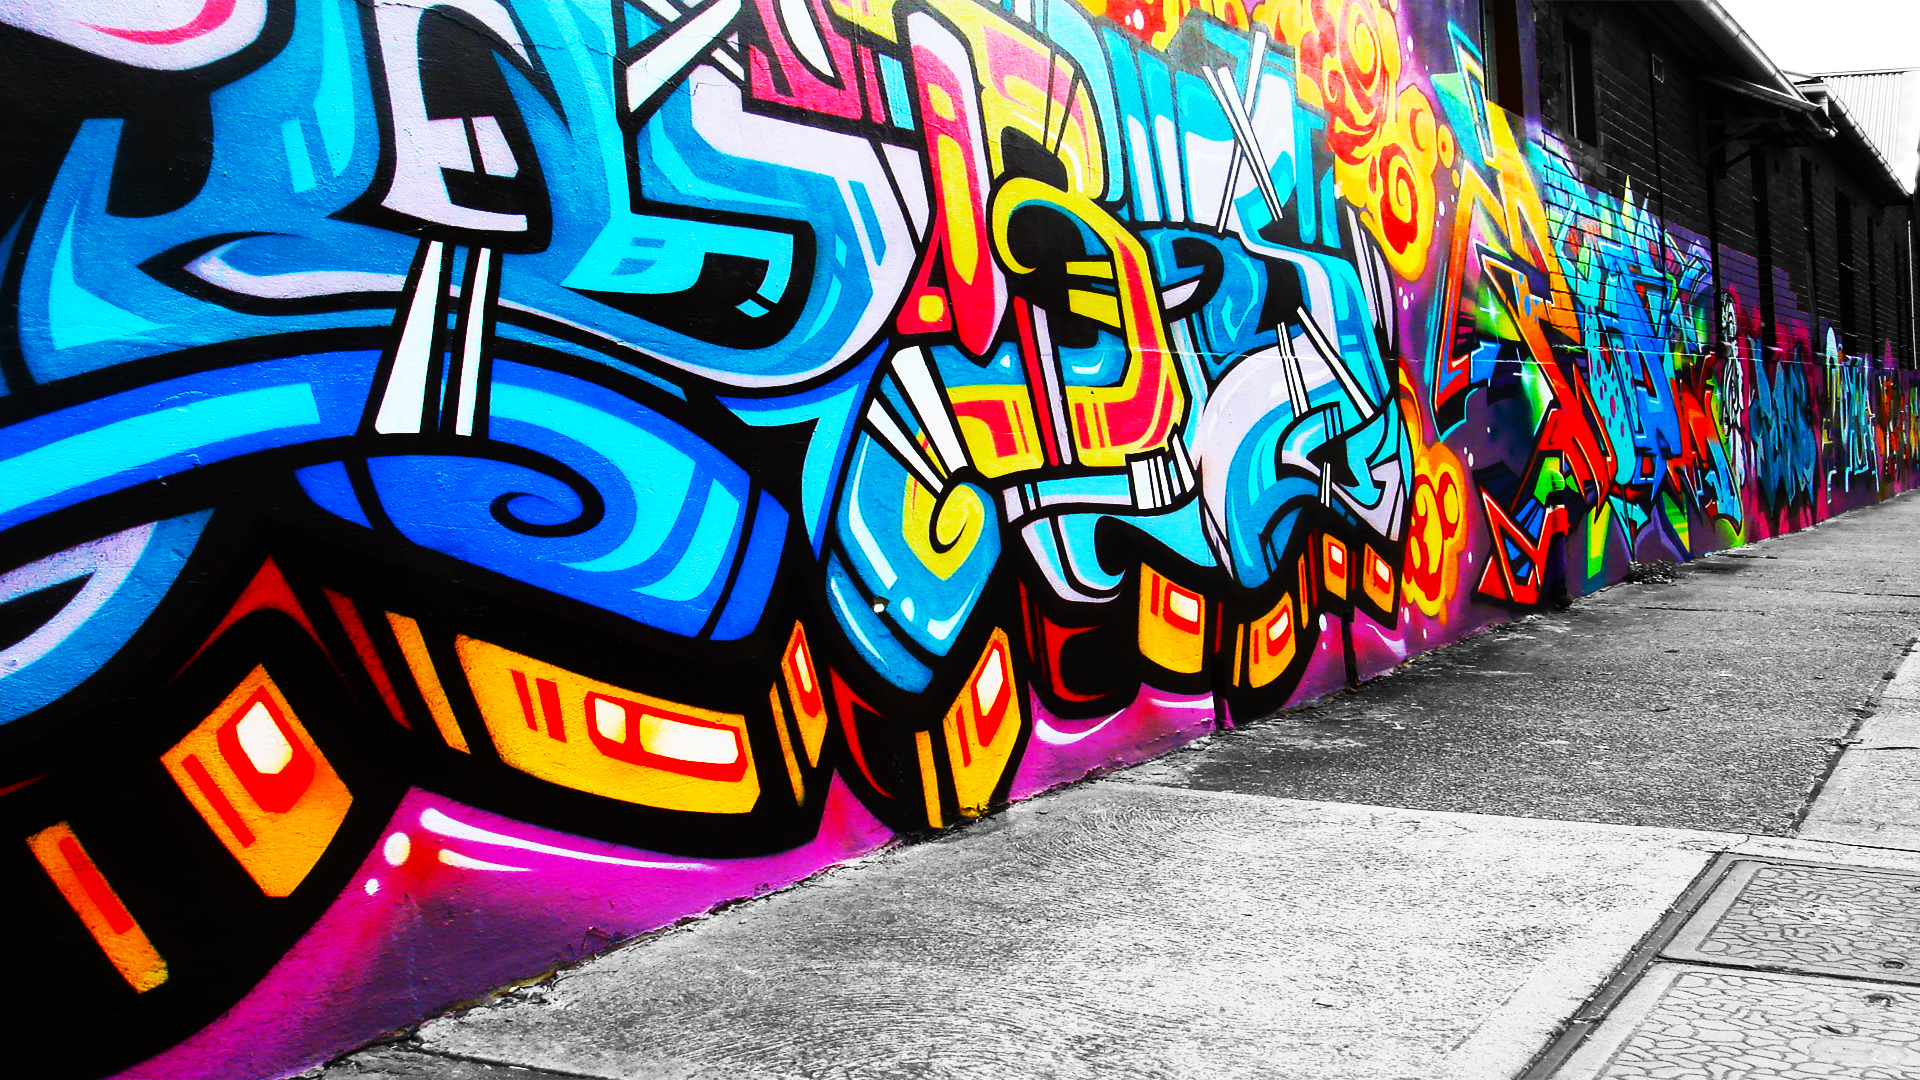 urban graffiti art wallpaper - photo #1